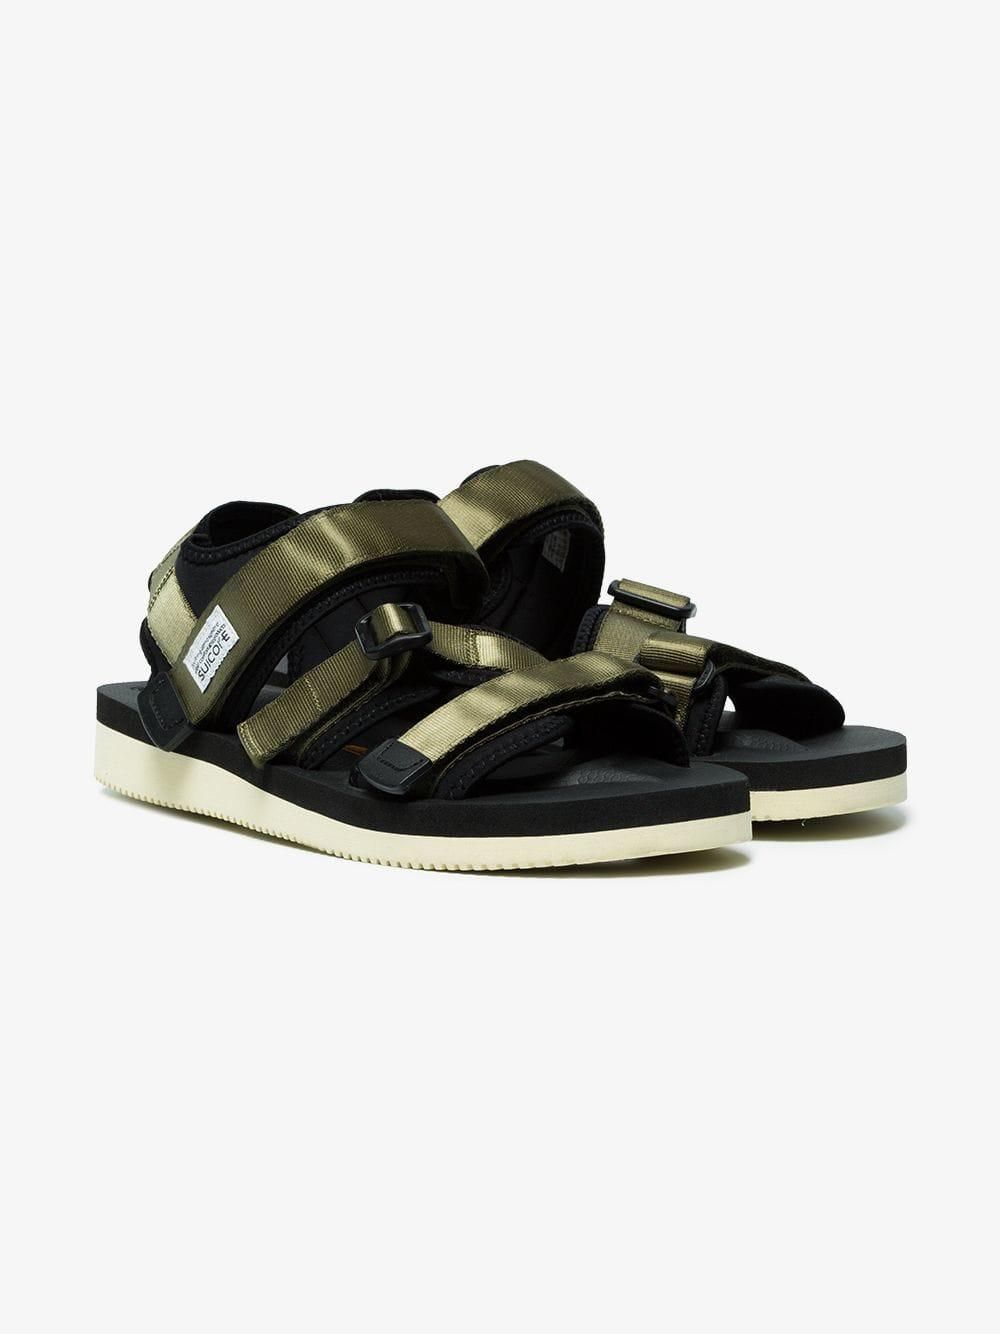 4c0f67697879 Suicoke Kisee Sandals in Green for Men - Lyst